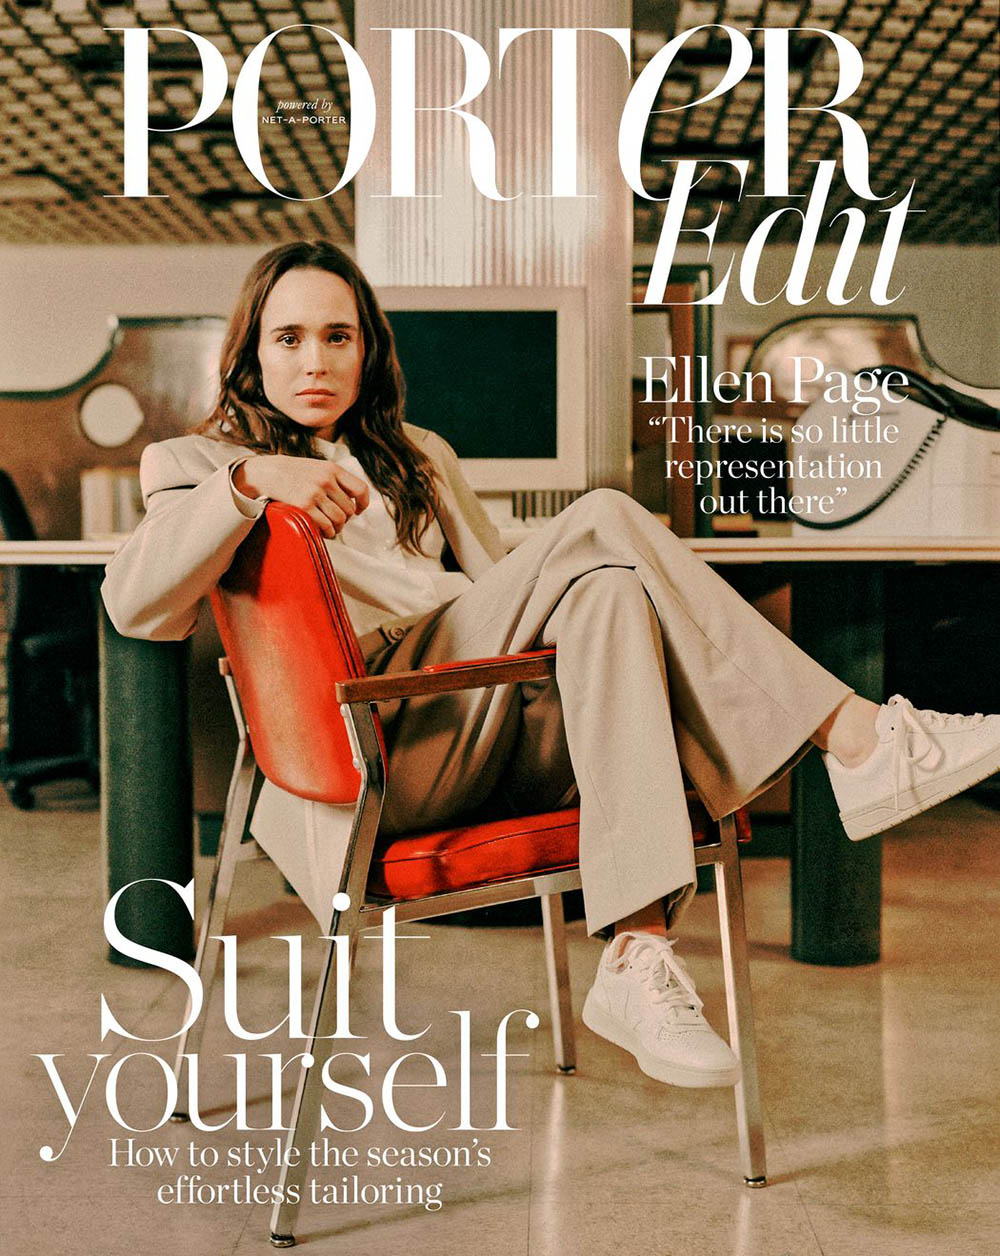 Ellen Page covers Porter Edit February 22nd, 2019 by Tiffany Nicholson